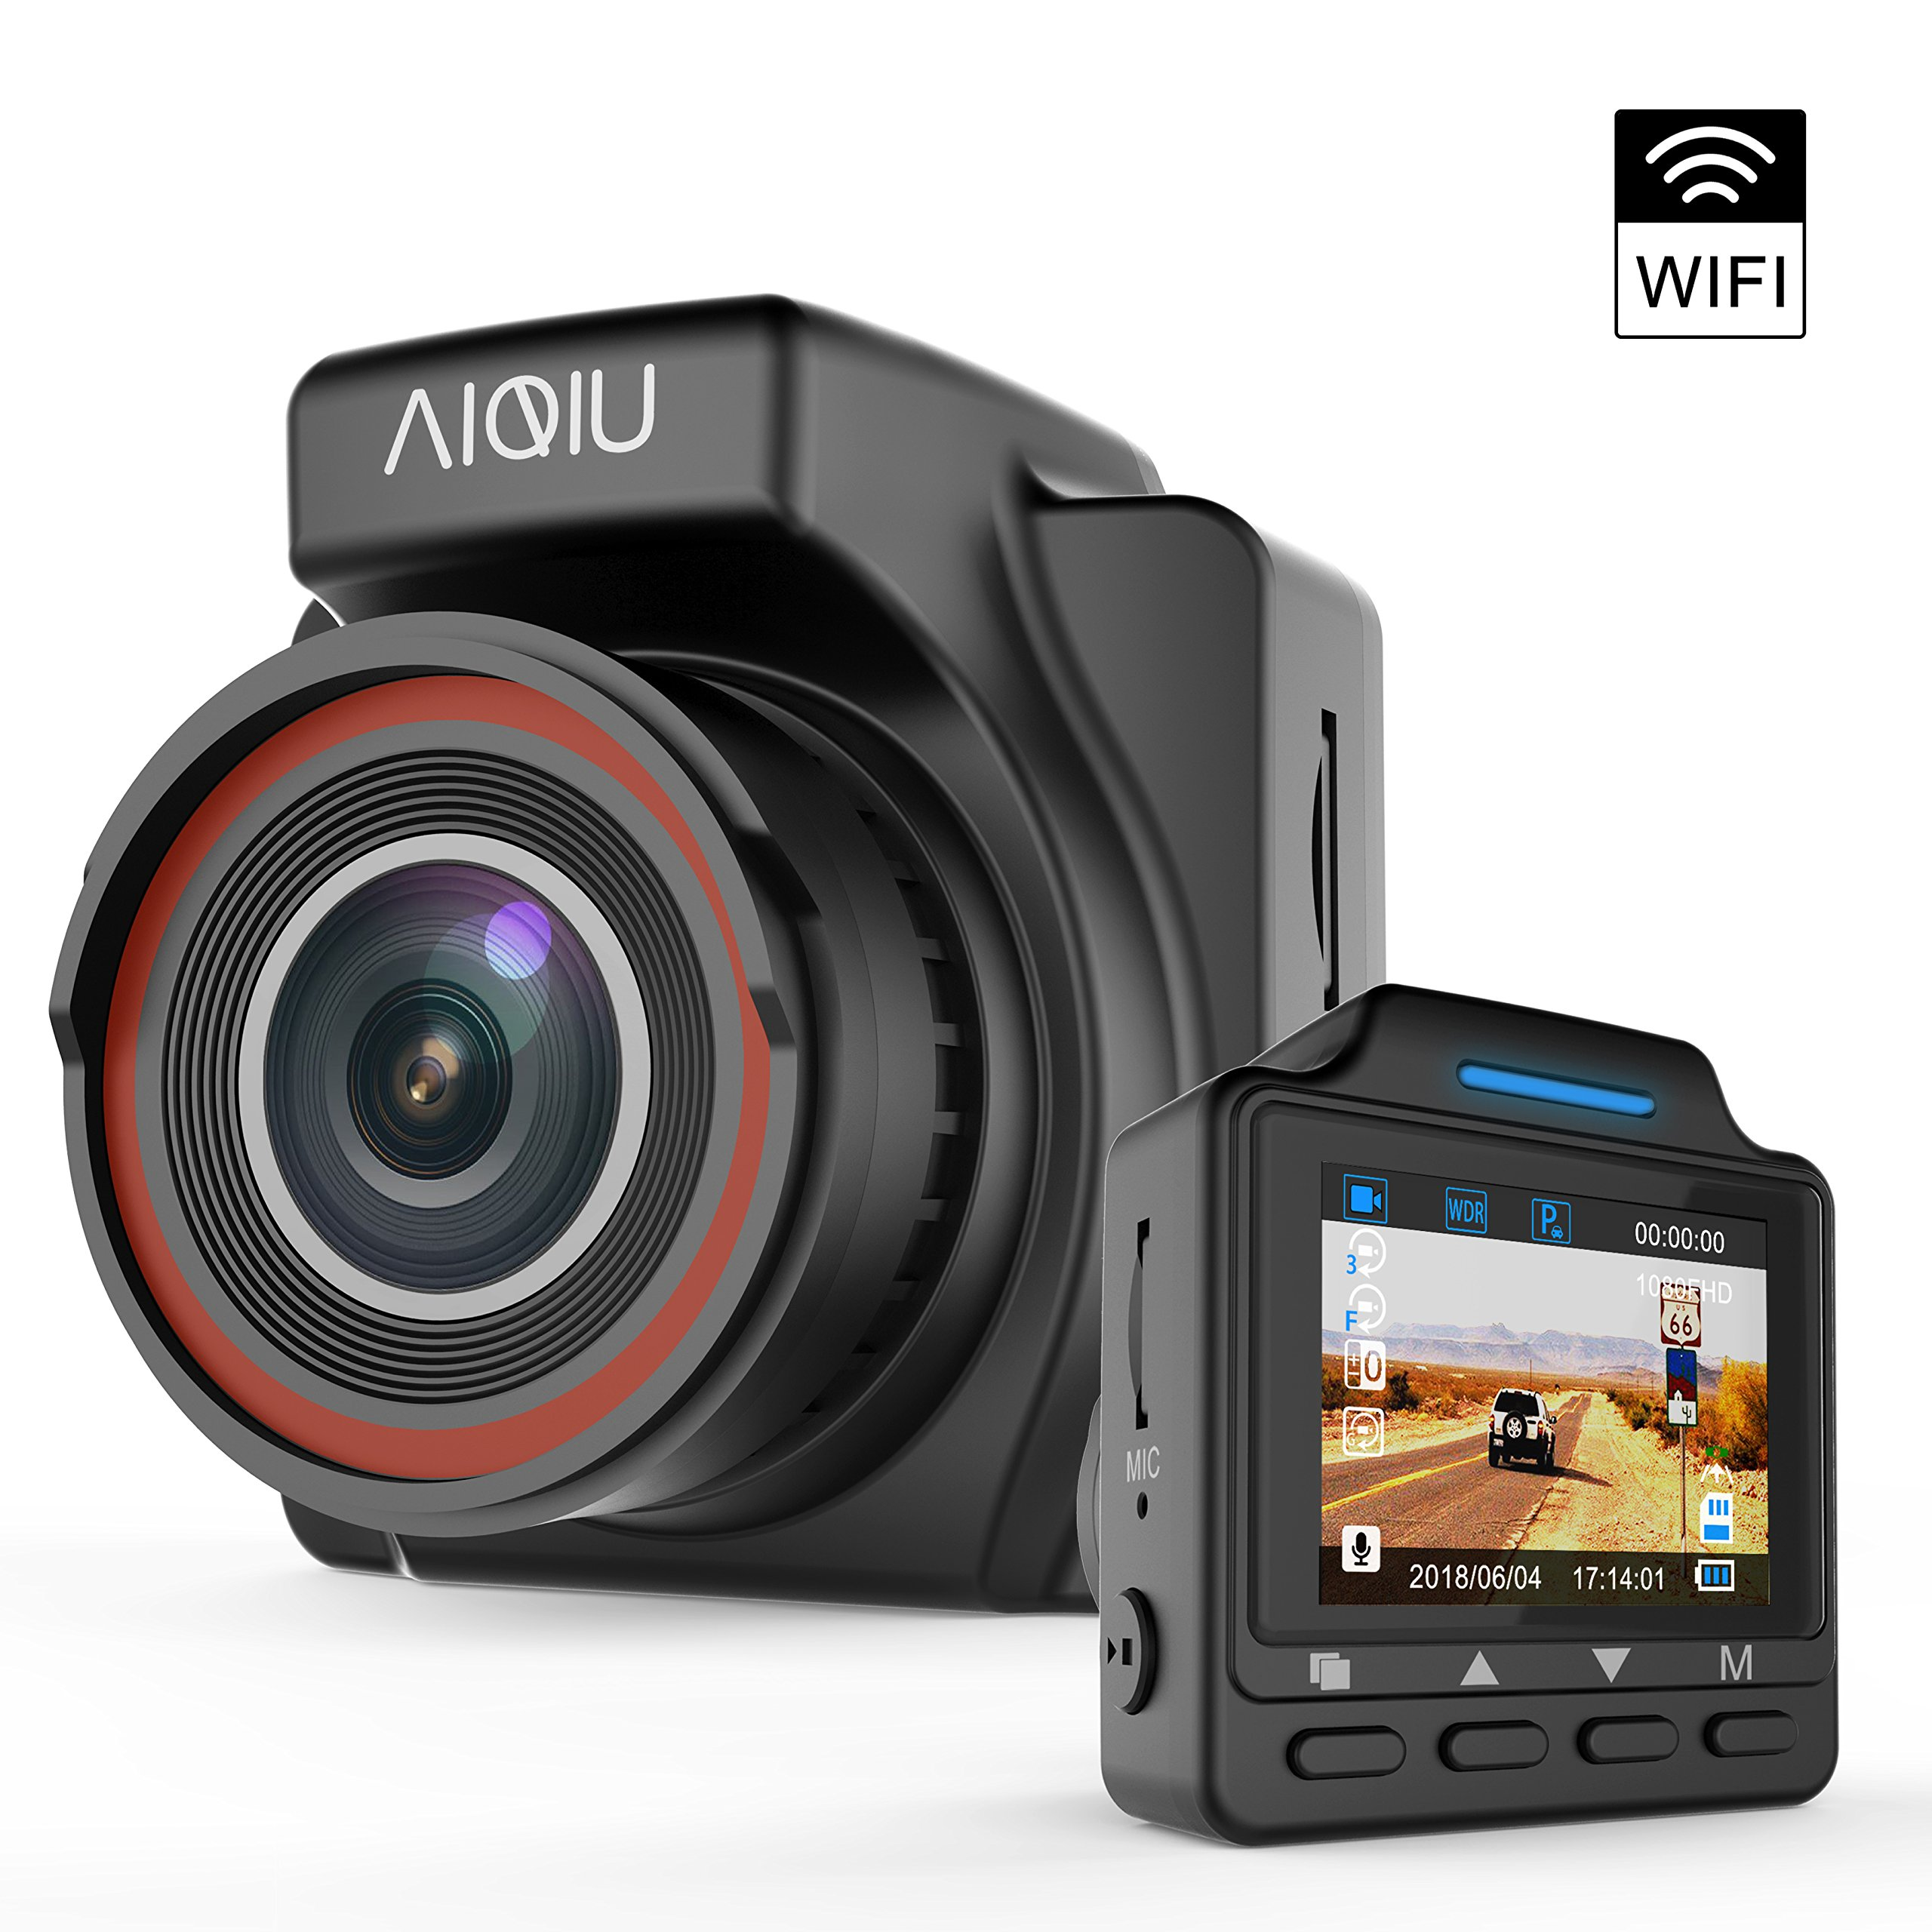 Dash Cam, AIQIU C1 WiFi 1080P FHD Car Driving Recorder 1.5'' Mini Night Vision Vehicle Dashboard Camera with G-Sensor, Loop Recording, WDR, Motion Detection, Parking Monitor